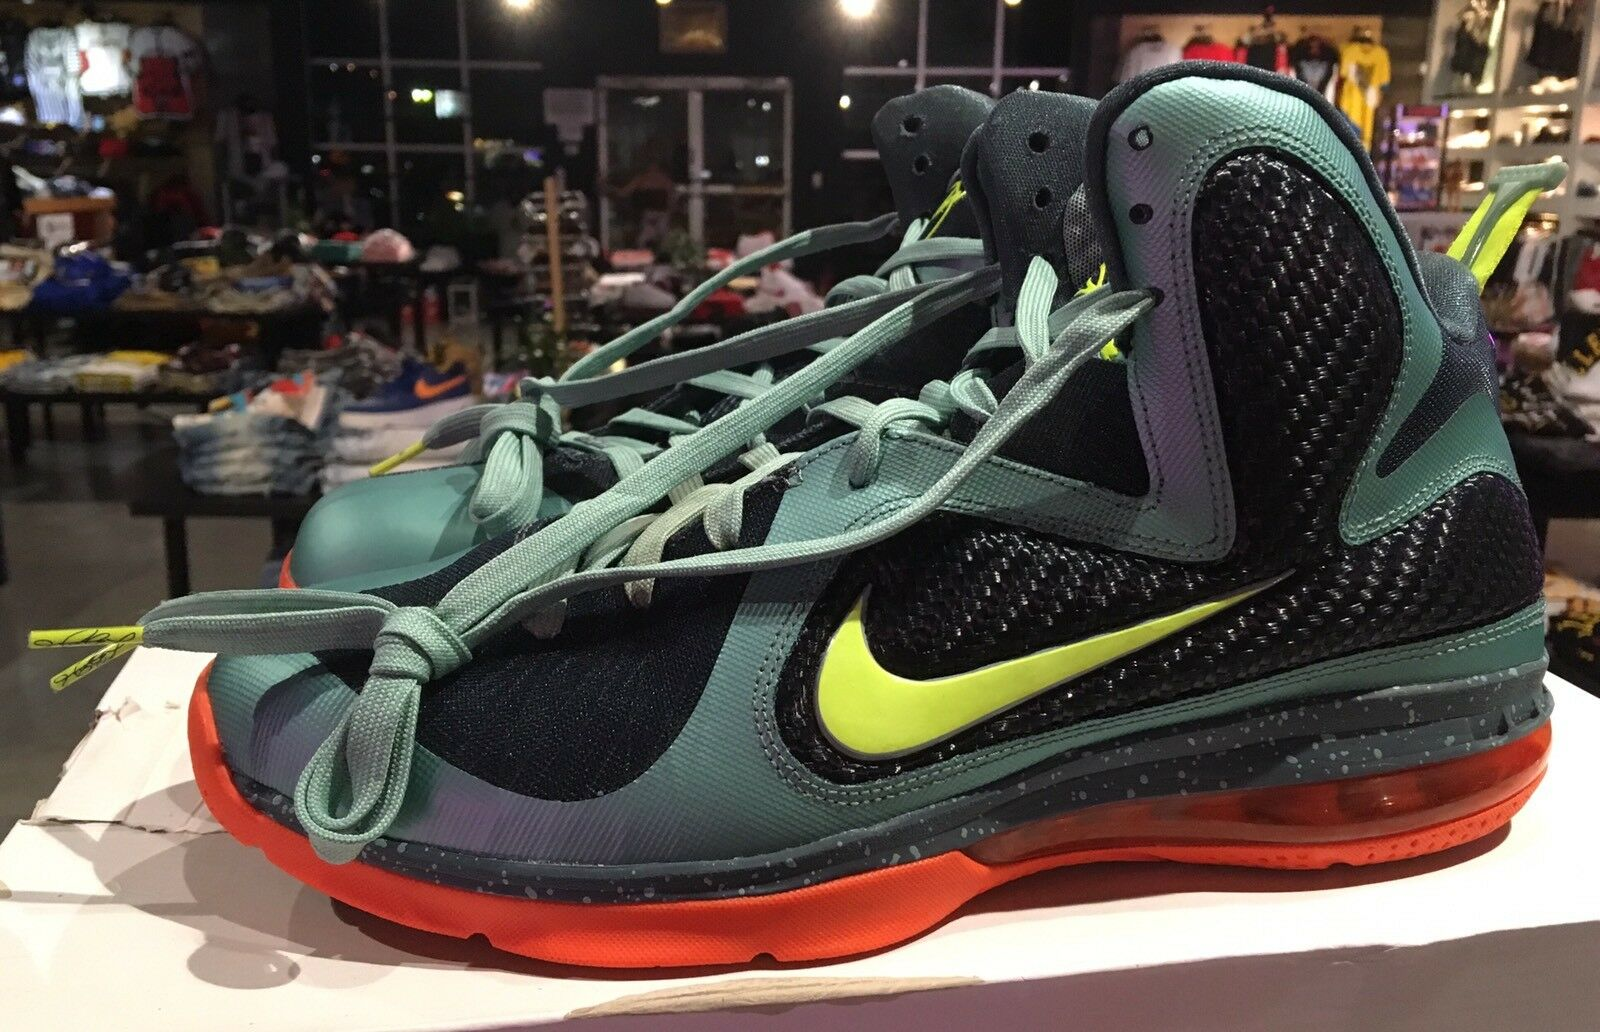 Nike Lebron 9 Cannon In Cannon Grn/Blk/Orng Sz. 11 In 100% Authentic Cheap and beautiful fashion